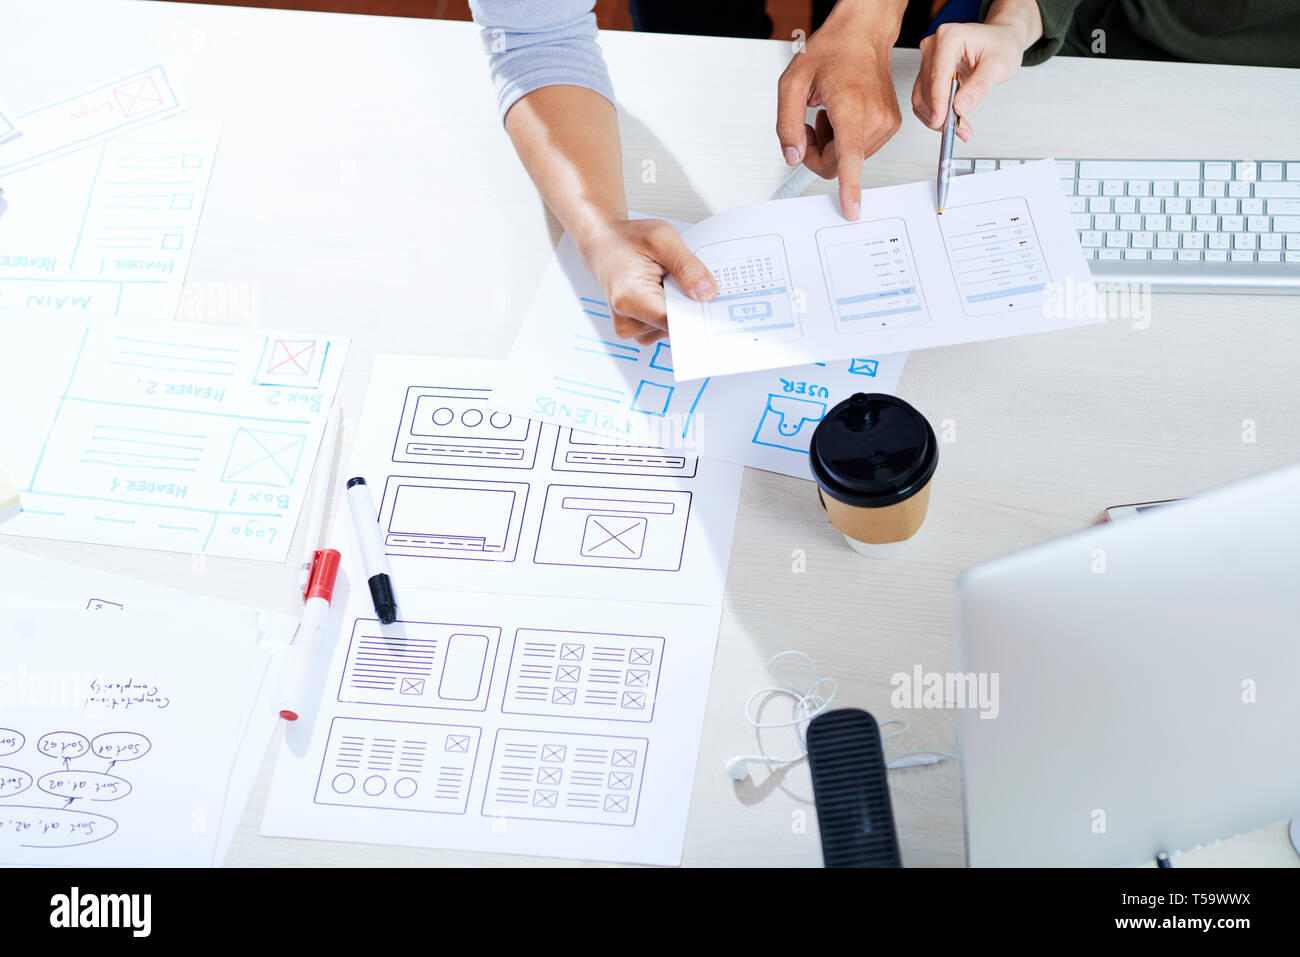 Discussing ux design for mobile app - Stock Image